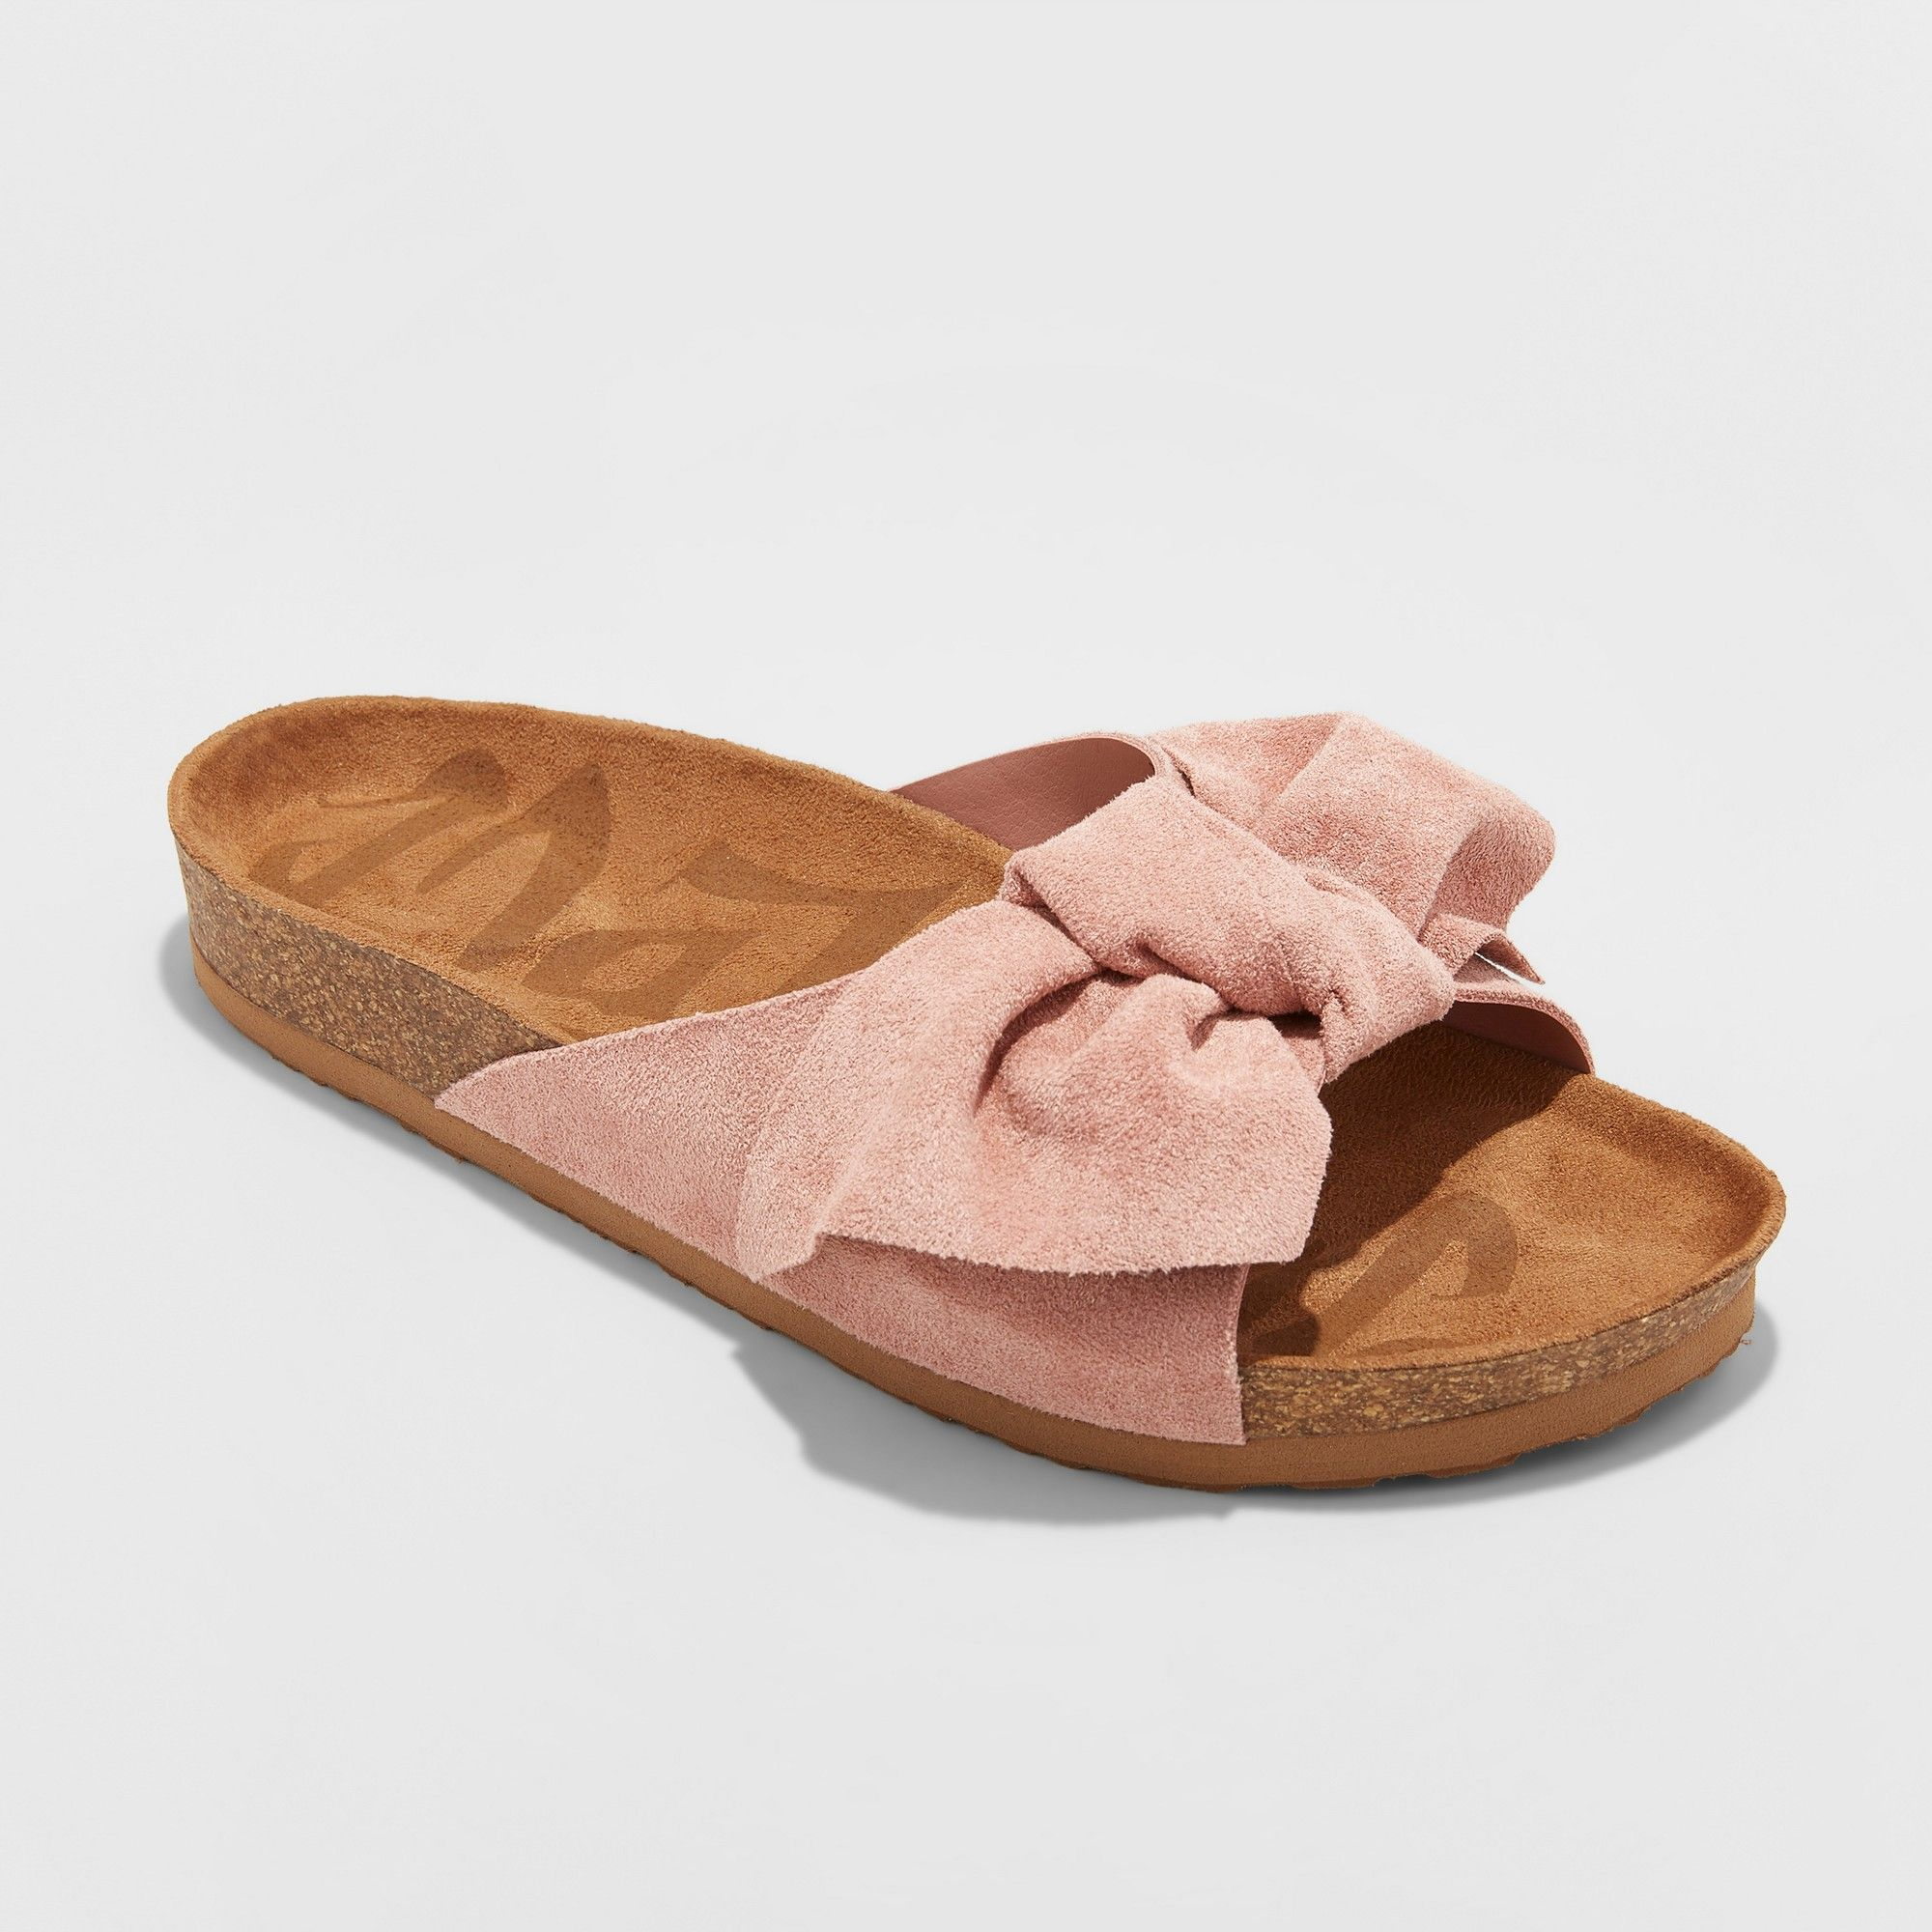 cc675f981fb49 Women's Mad Love Adia Bow Footbed Sandals - Blush 5 in 2019 ...